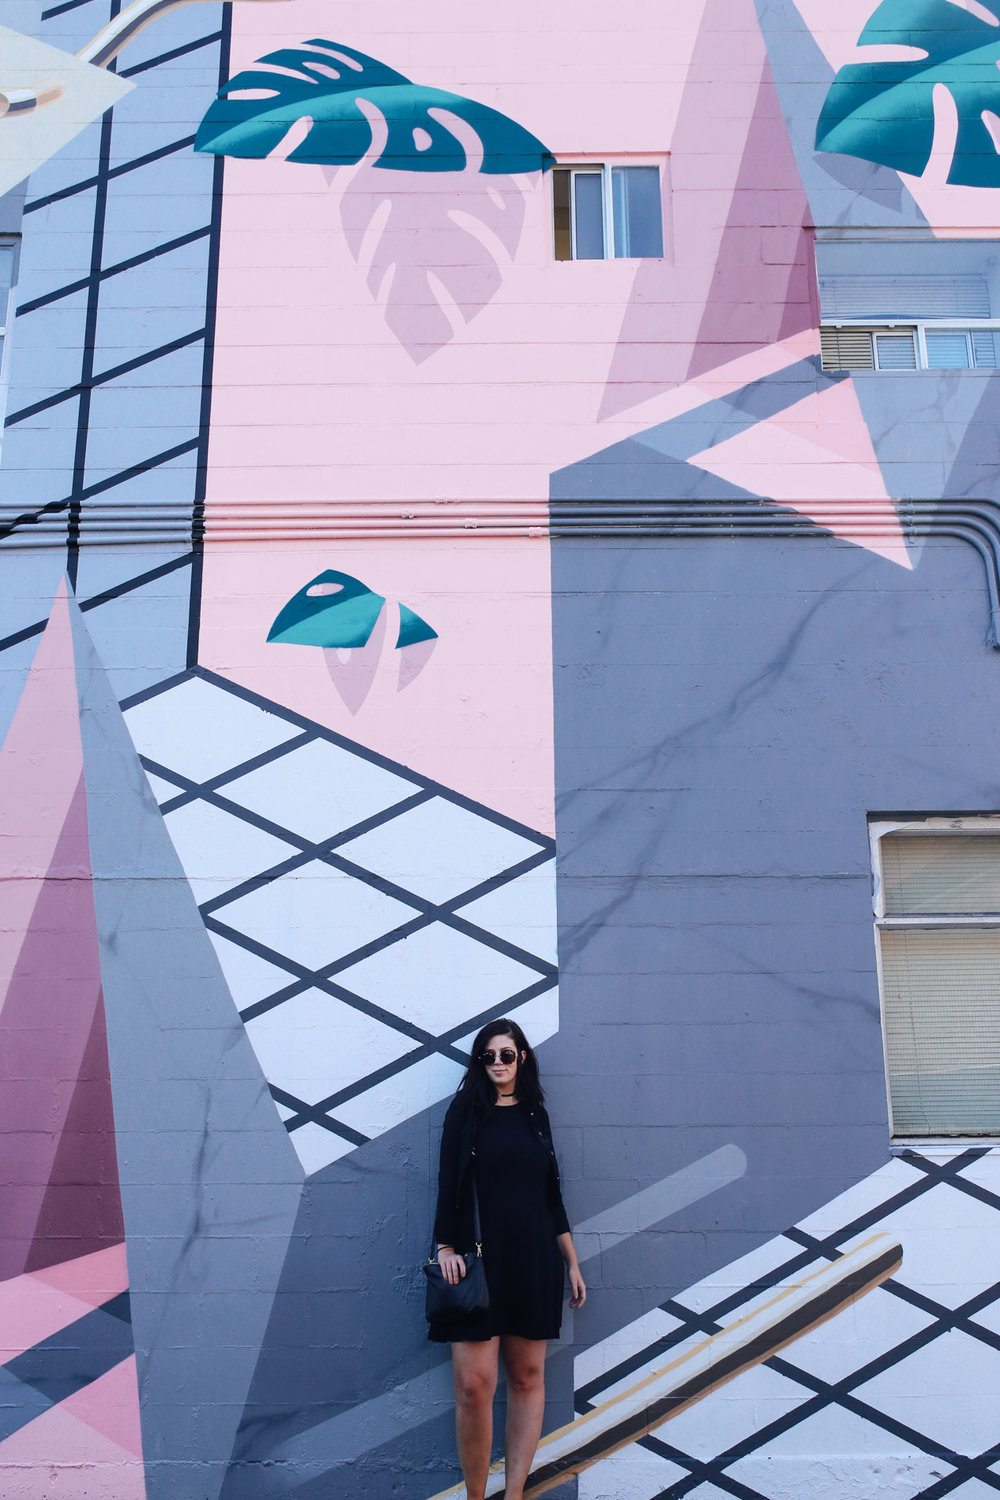 Local Wanderer's Taylor in front of artstis duo Low Bros mural